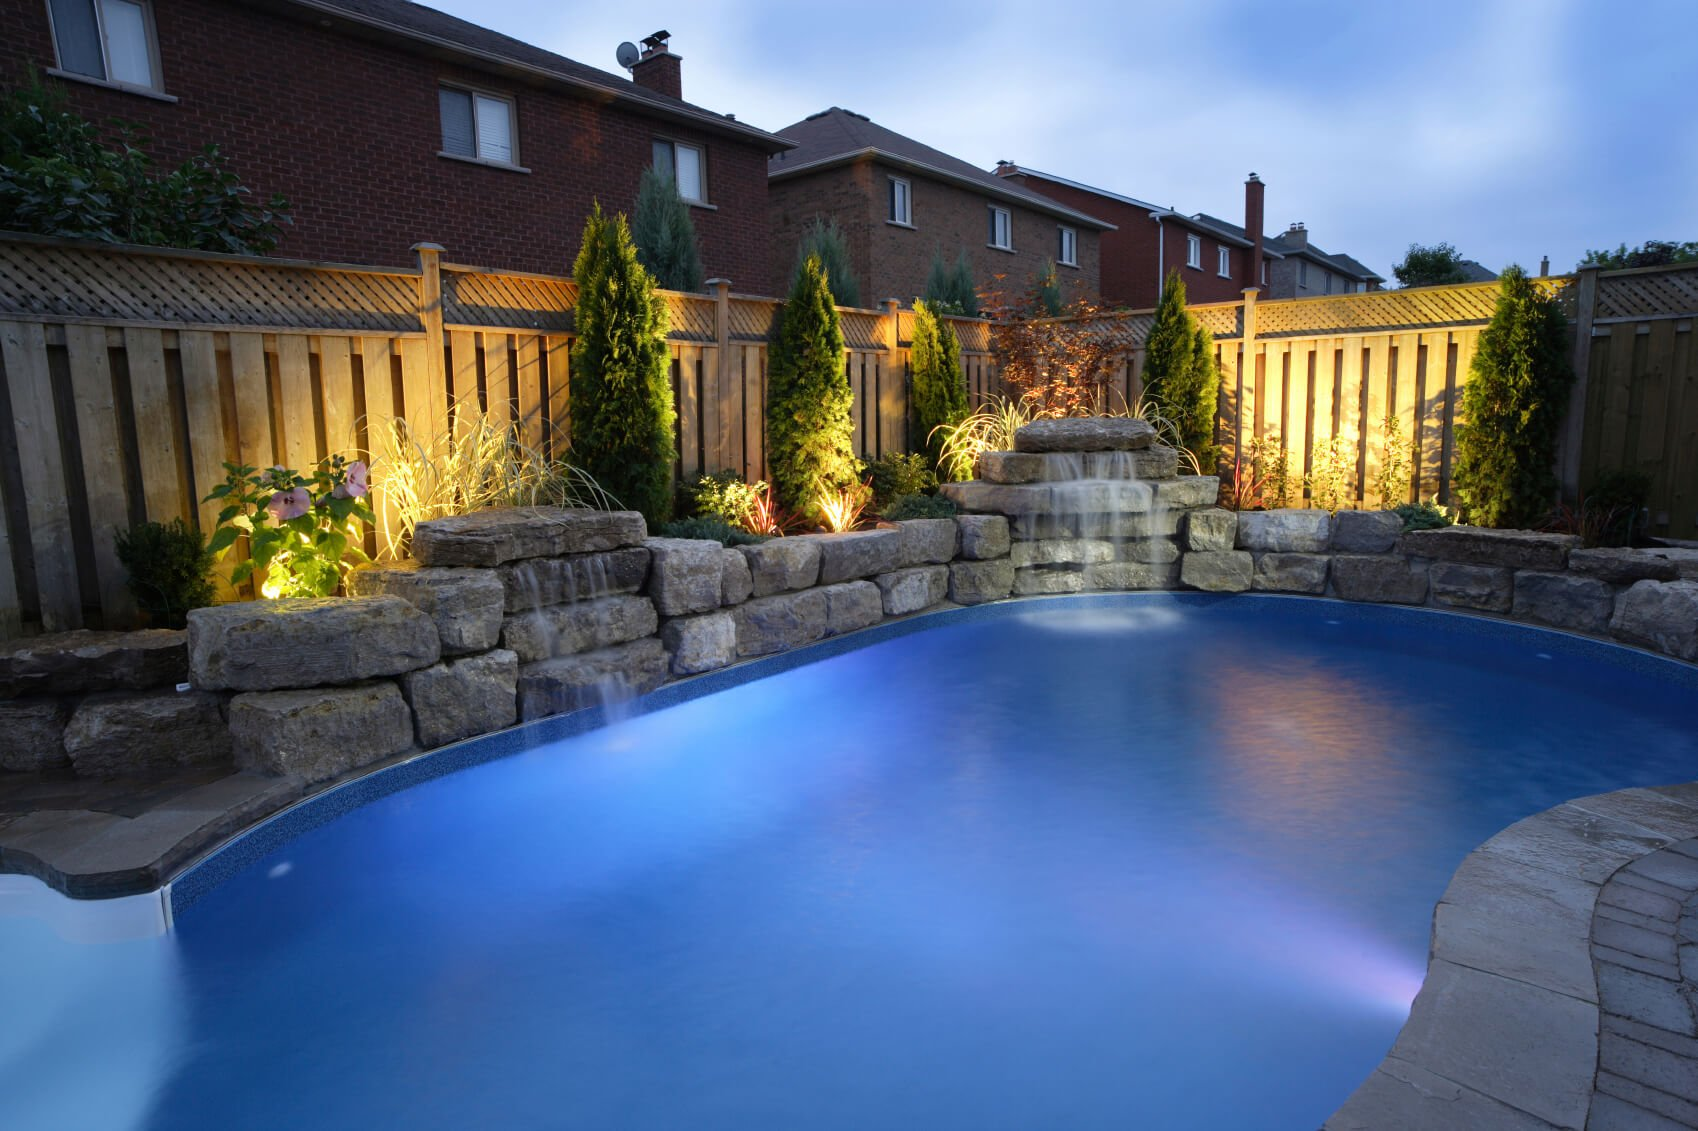 A tall wooden fence is classic. With a tall fence, you can have a bit of privacy for you and your family while taking a dip in your pool.